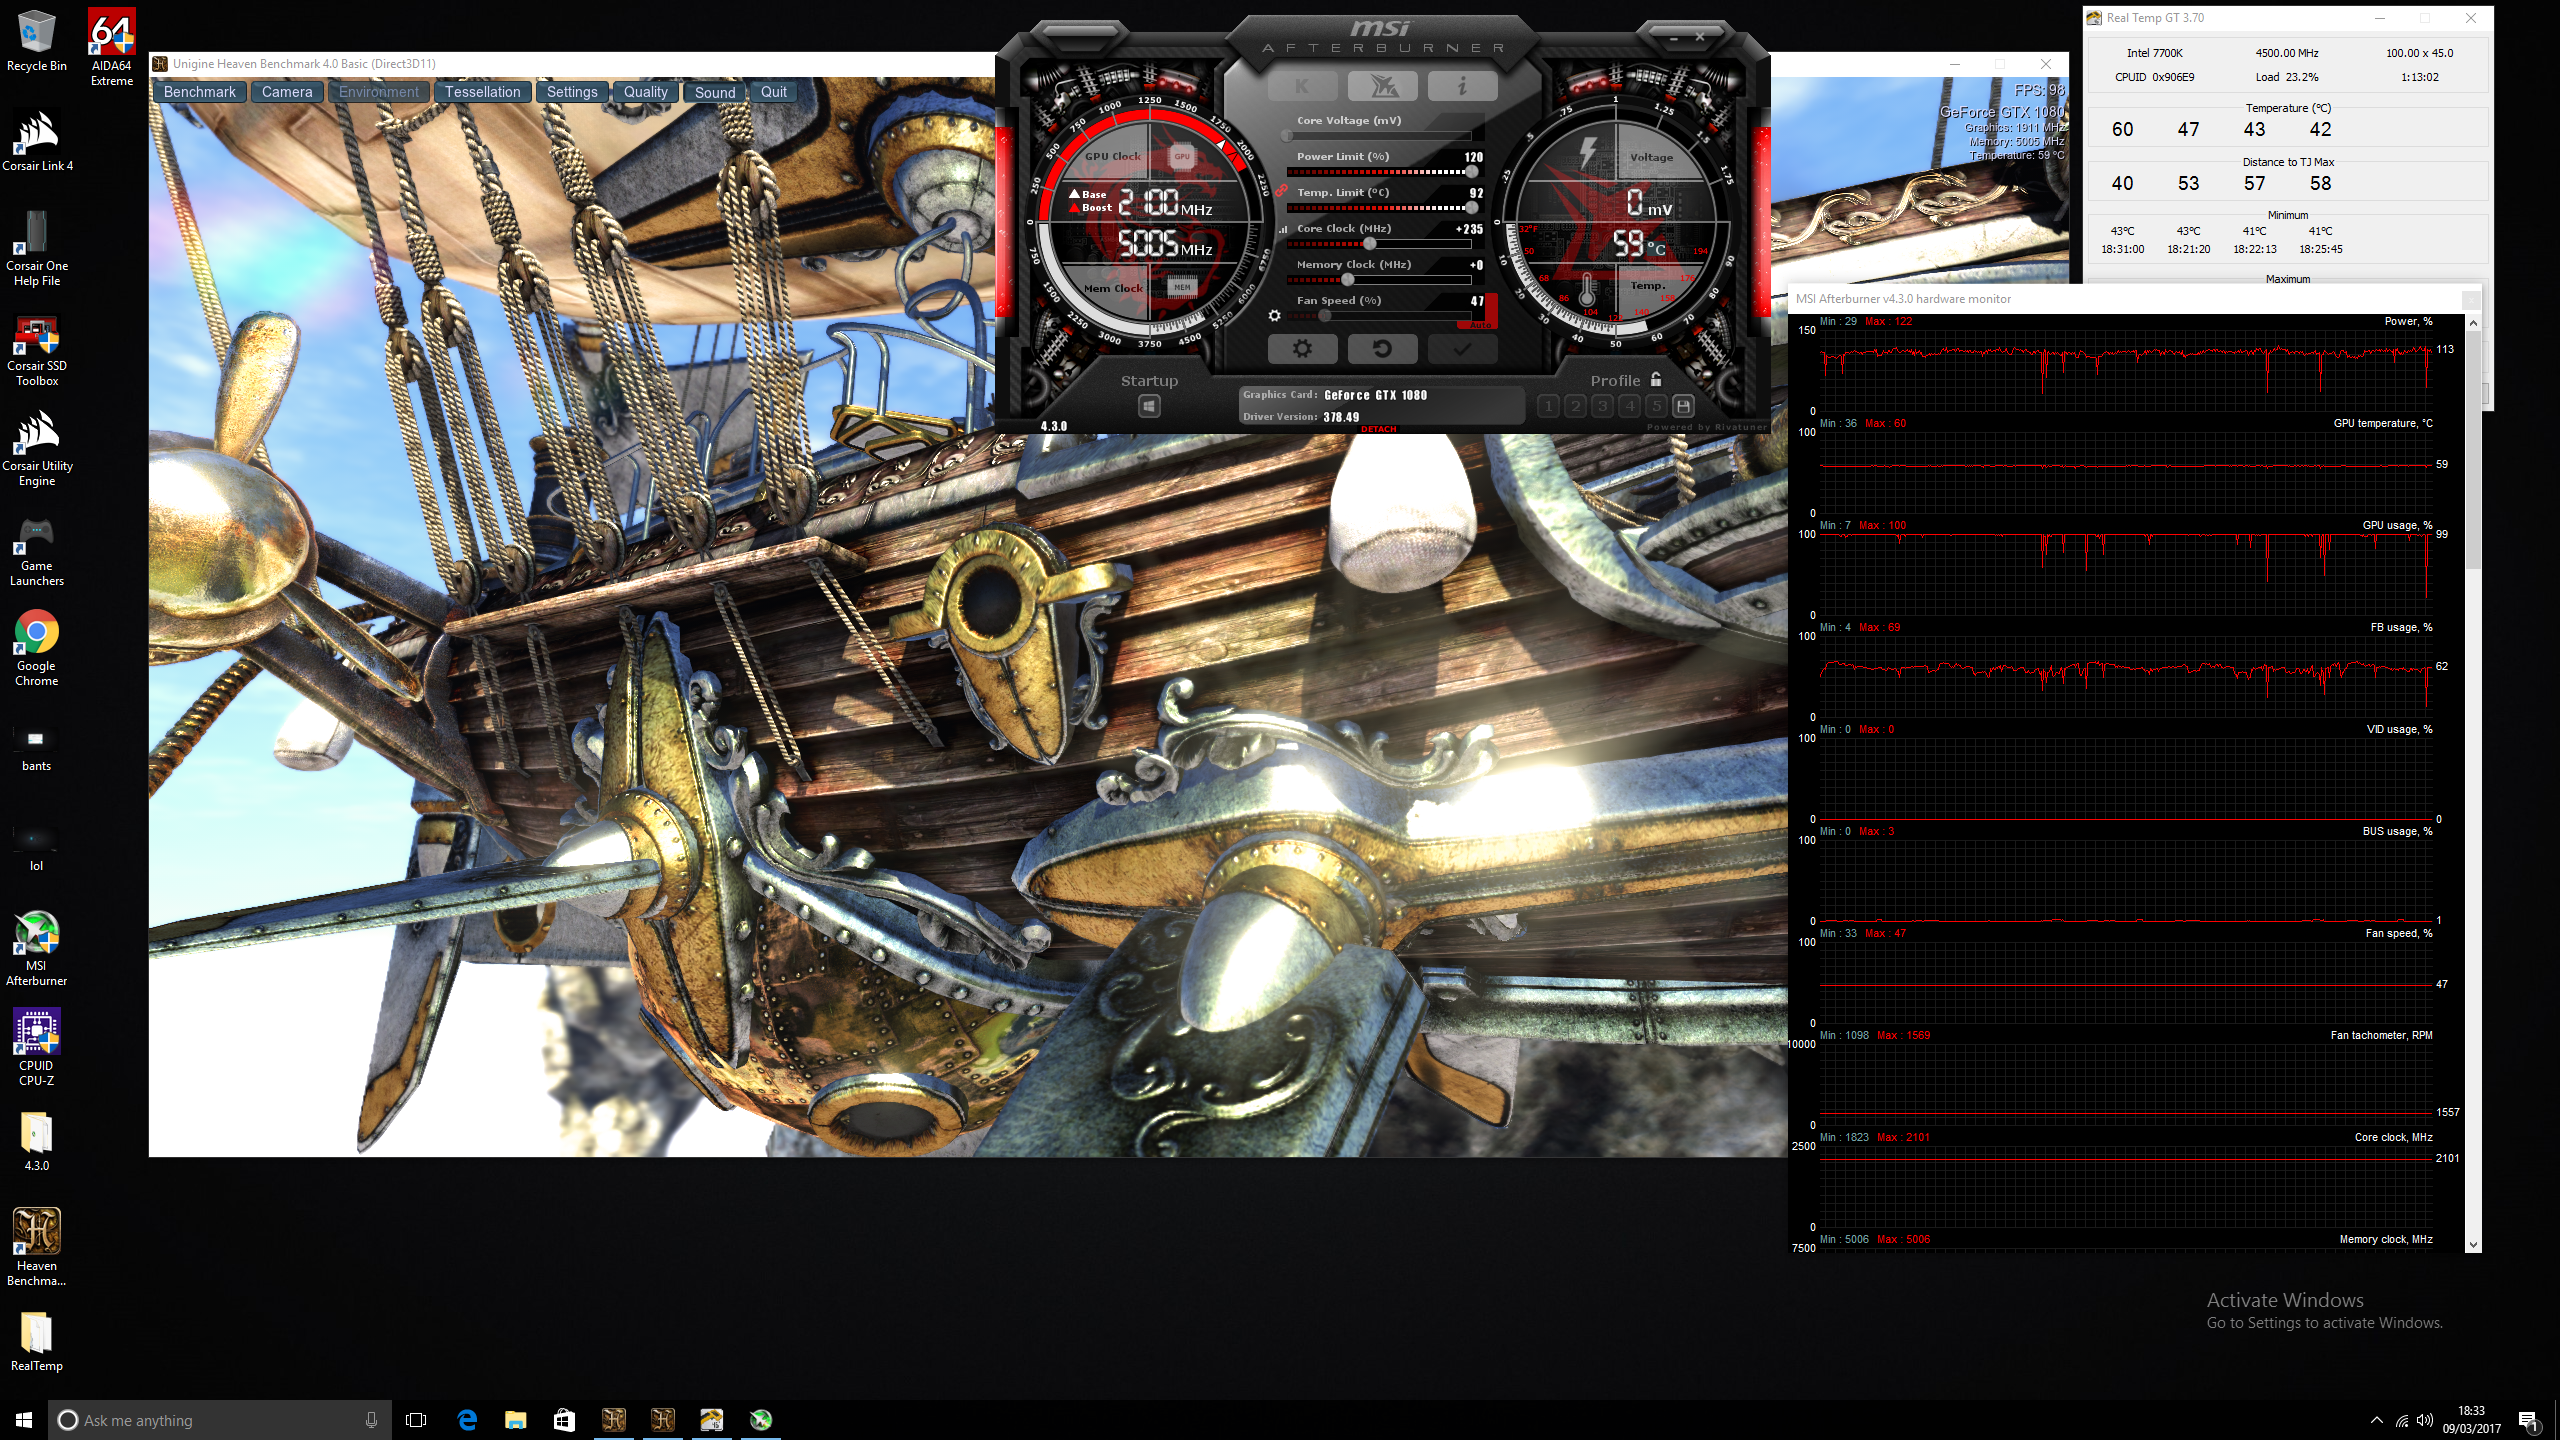 That is a seriously great GPU temperature.